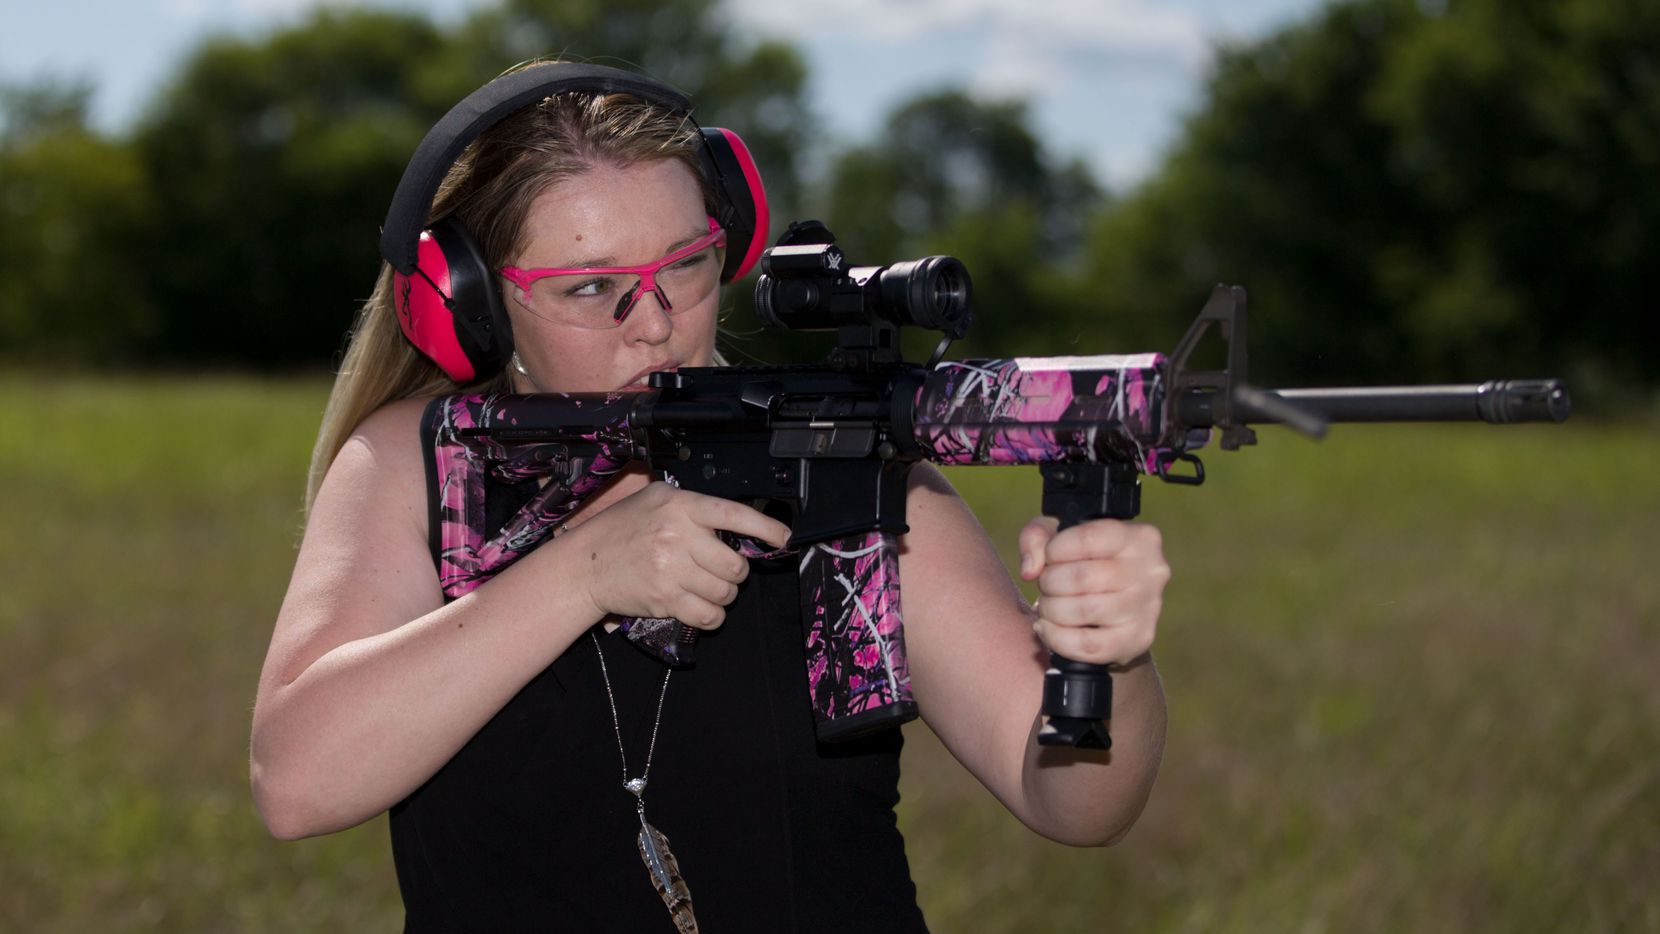 Why own an AR-15? Four Texans tell why they own the most